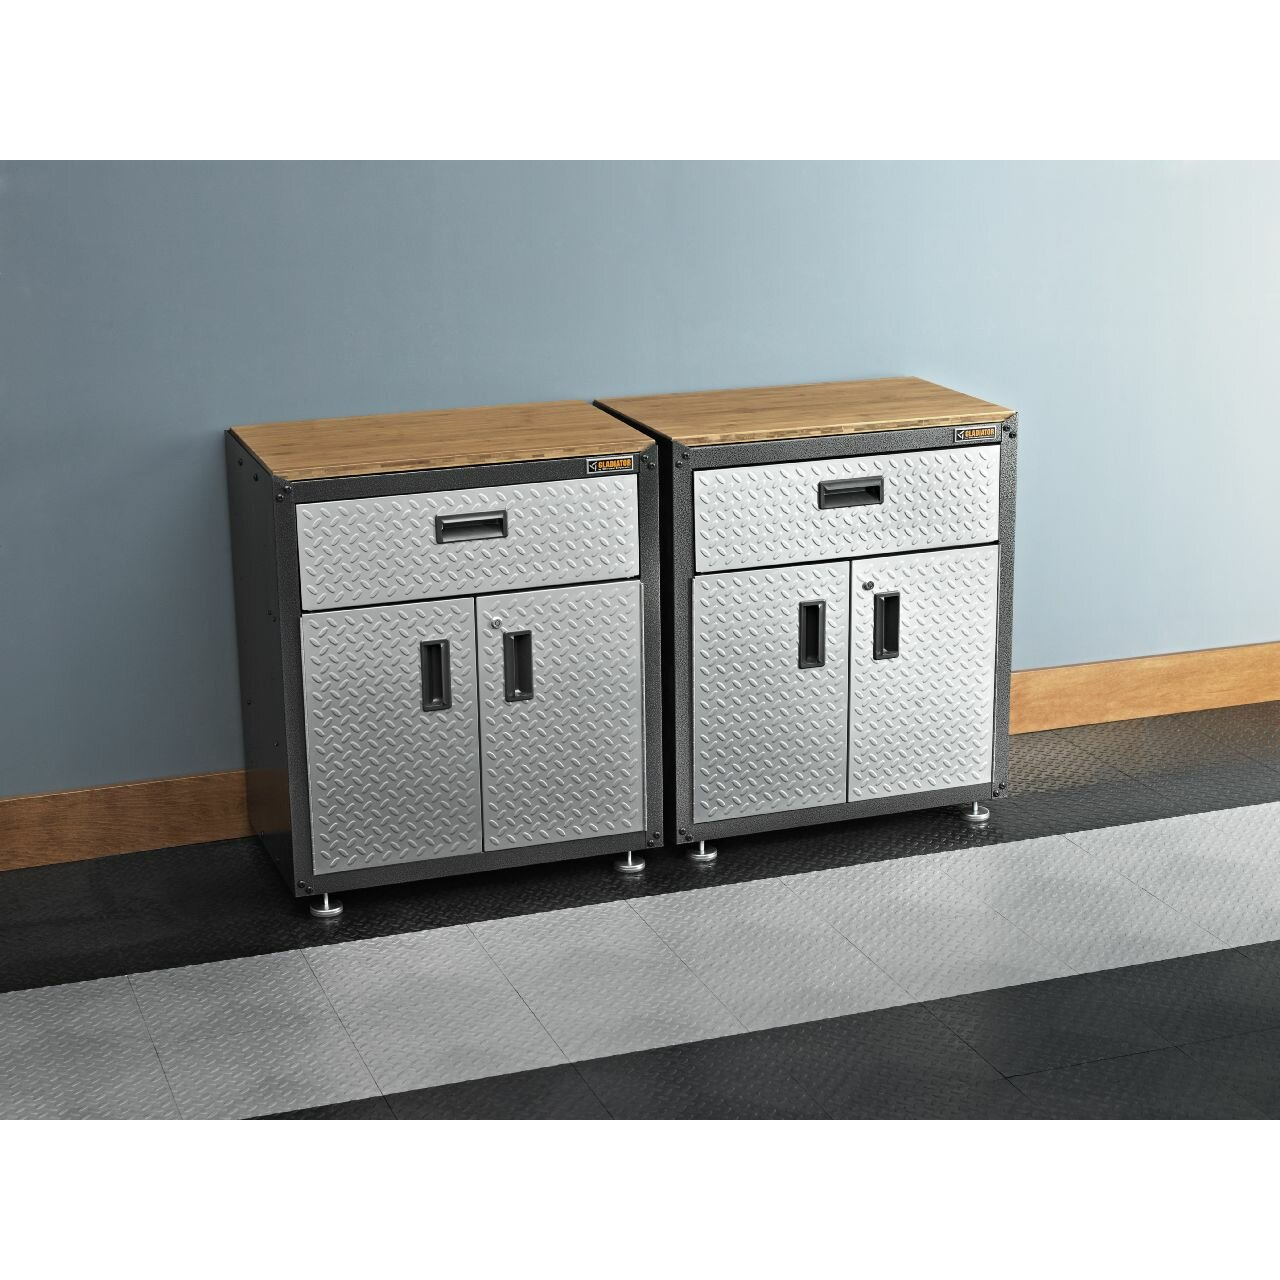 Ready To Assemble Kitchen Cabinets Reviews Gladiator Ready To Assemble 31 Quot H X 28 Quot W X 18 Quot D Steel 0